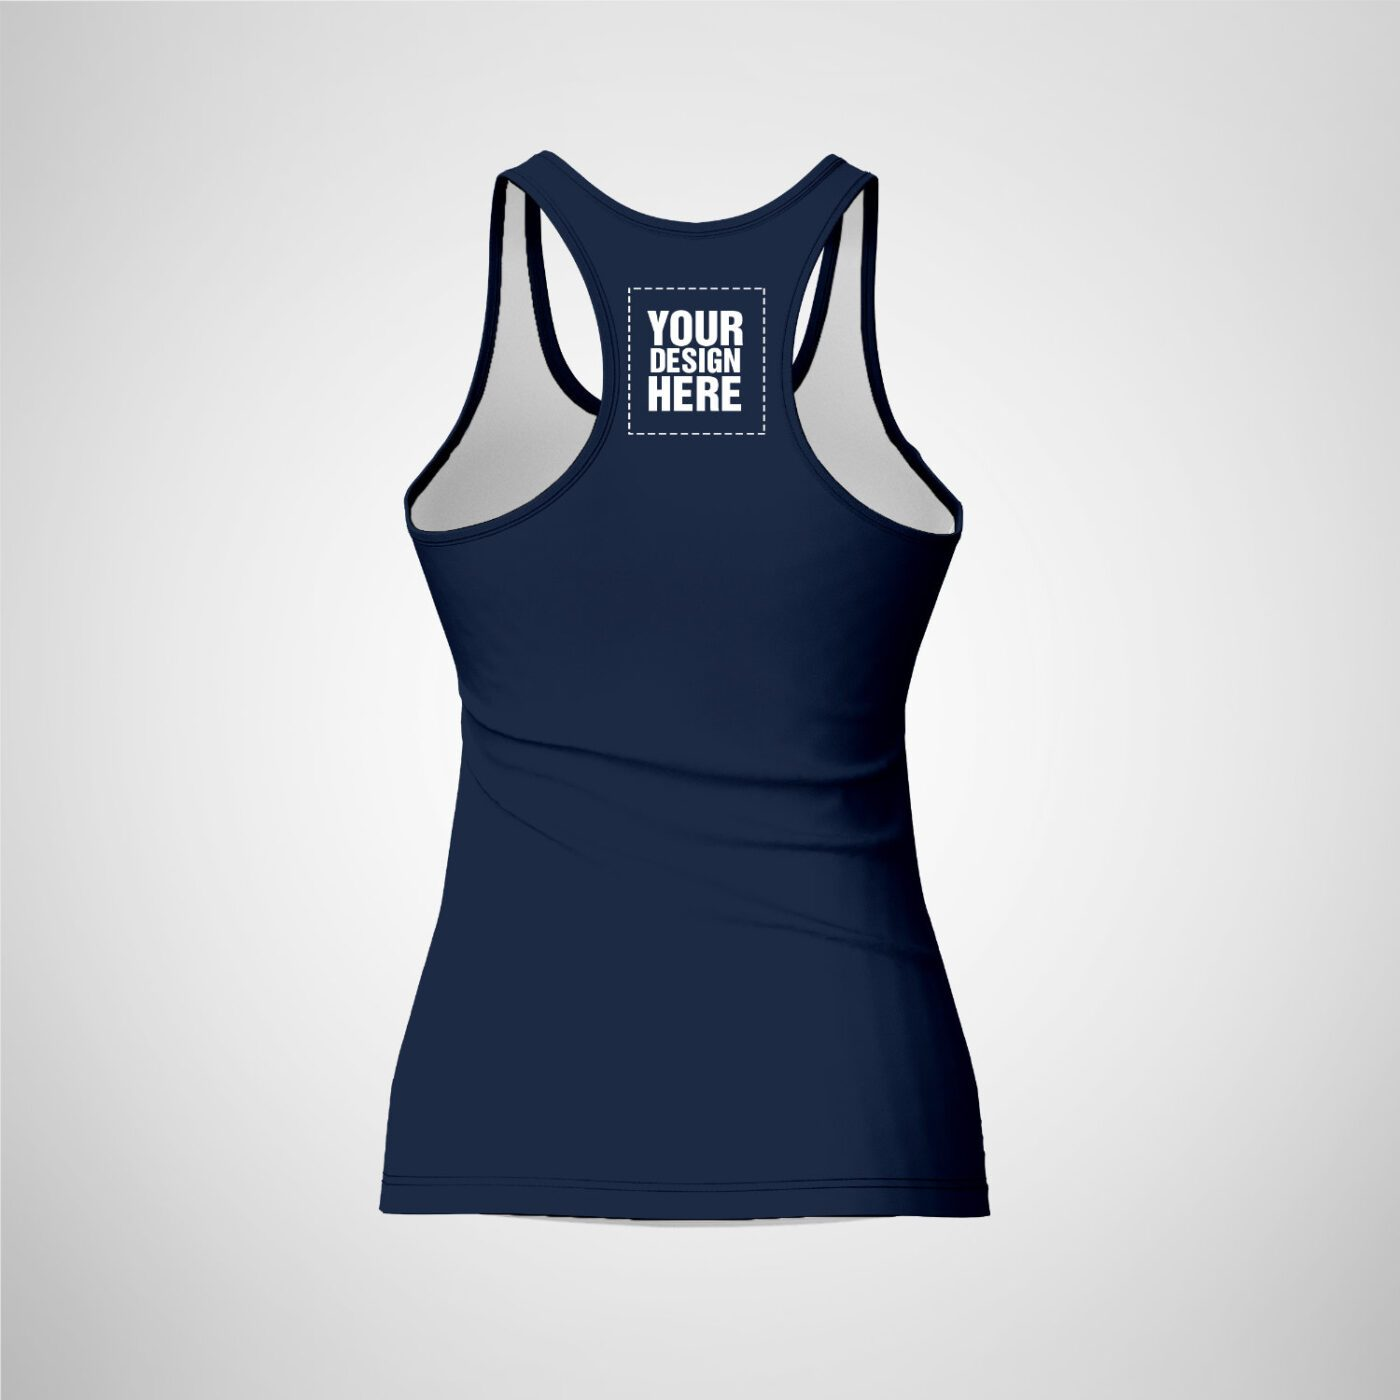 Womens Racerback - Dark Blue Color